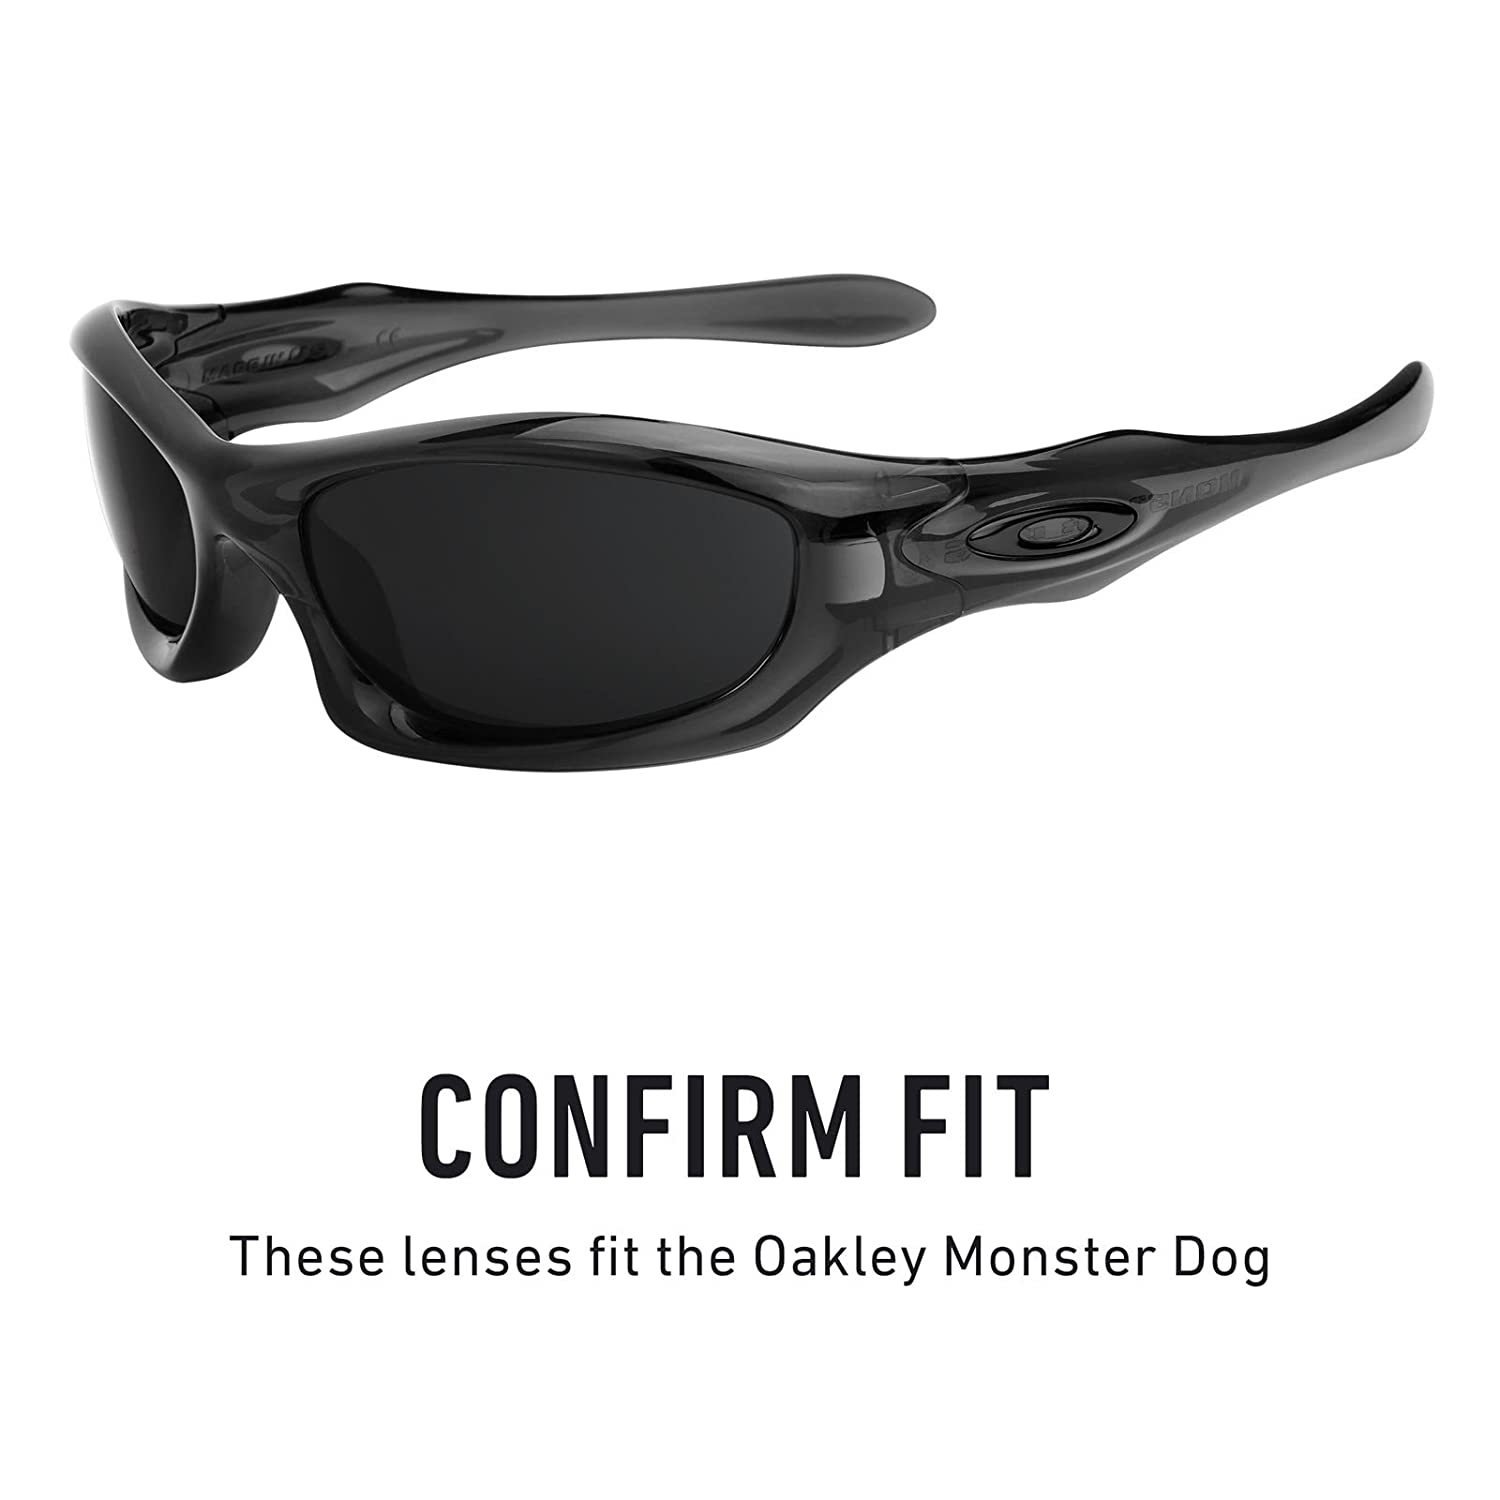 08a029797b Amazon.com  Revant Polarized Replacement Lenses for Oakley Monster Dog  Elite Black Chrome MirrorShield  Sports   Outdoors